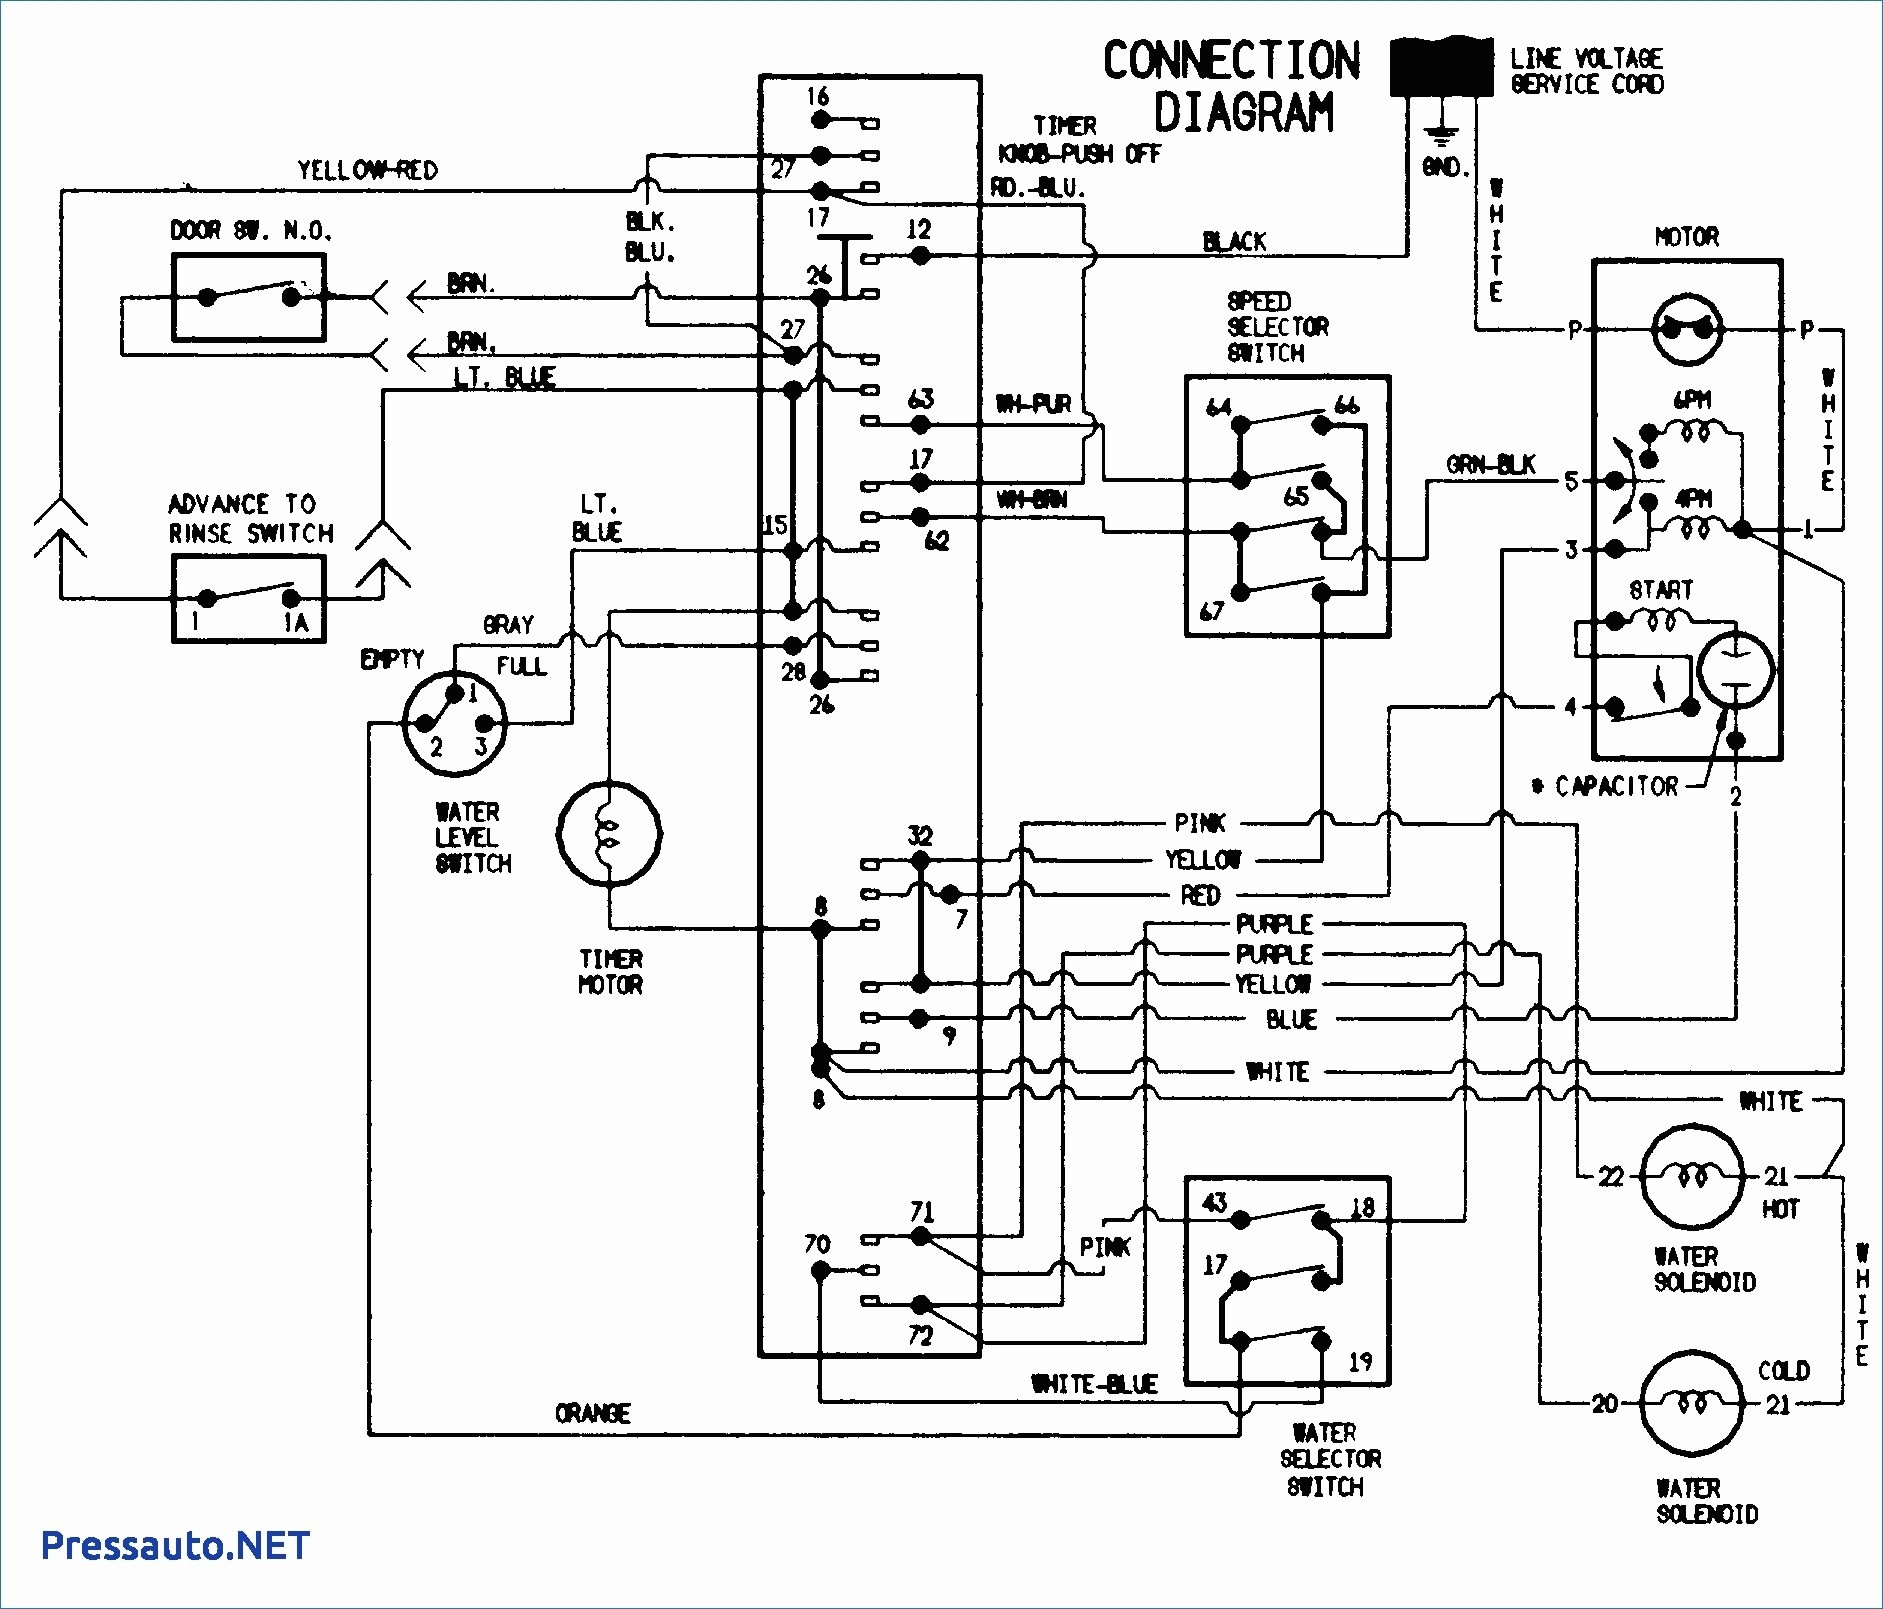 maytag washer wiring diagram Download-Maytag atlantis Dryer Plug Wiring Diagram New Wiring Diagram Maytag Centennial Dryer Wiring Diagram 15-d